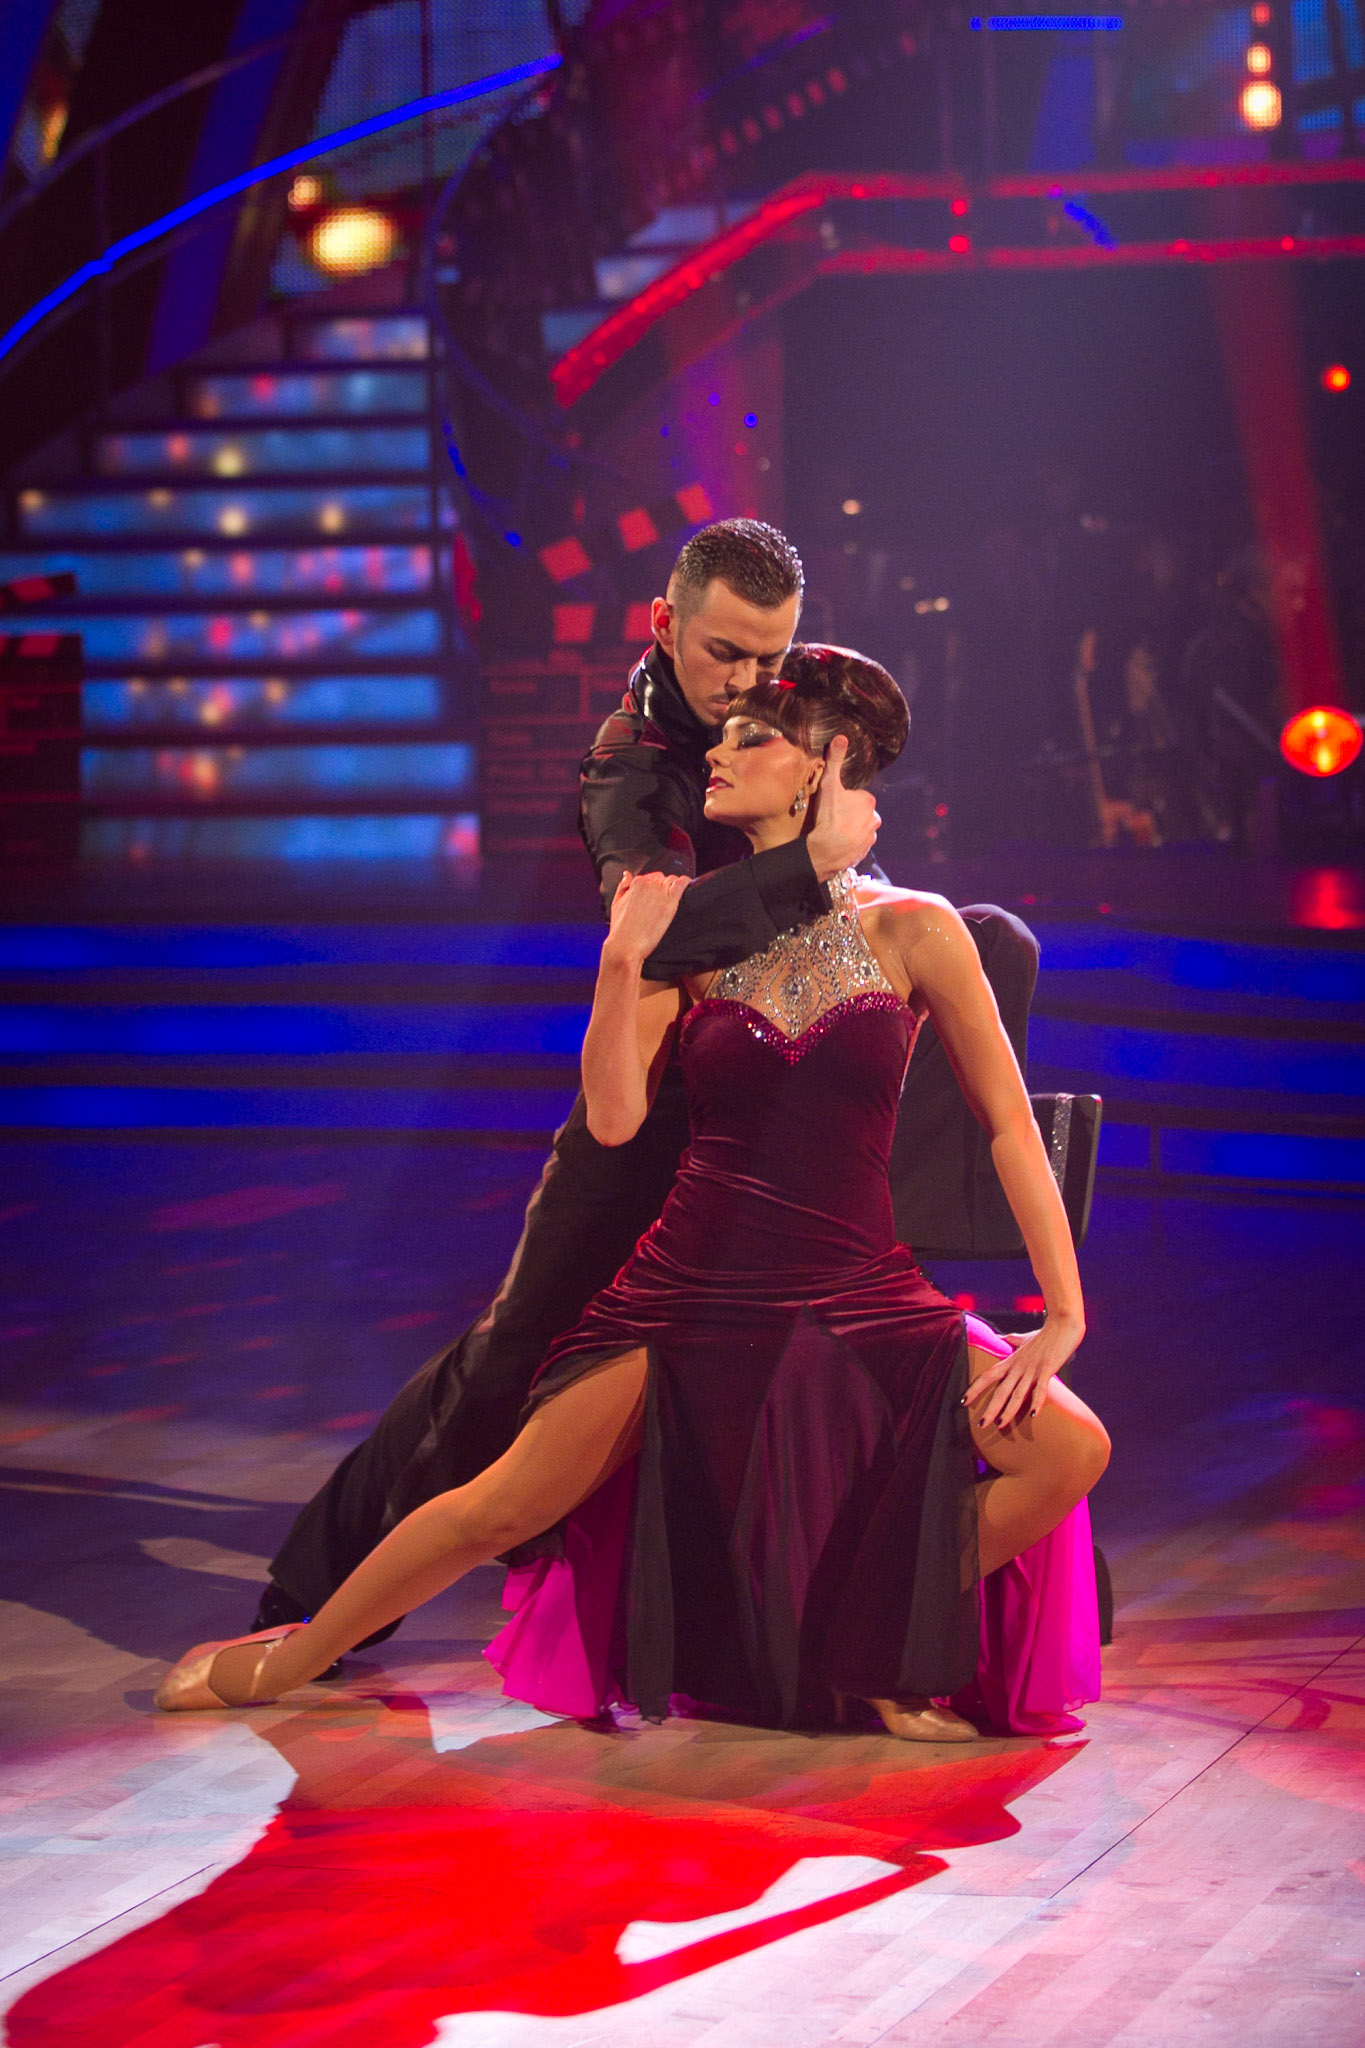 two dancers perform the tango